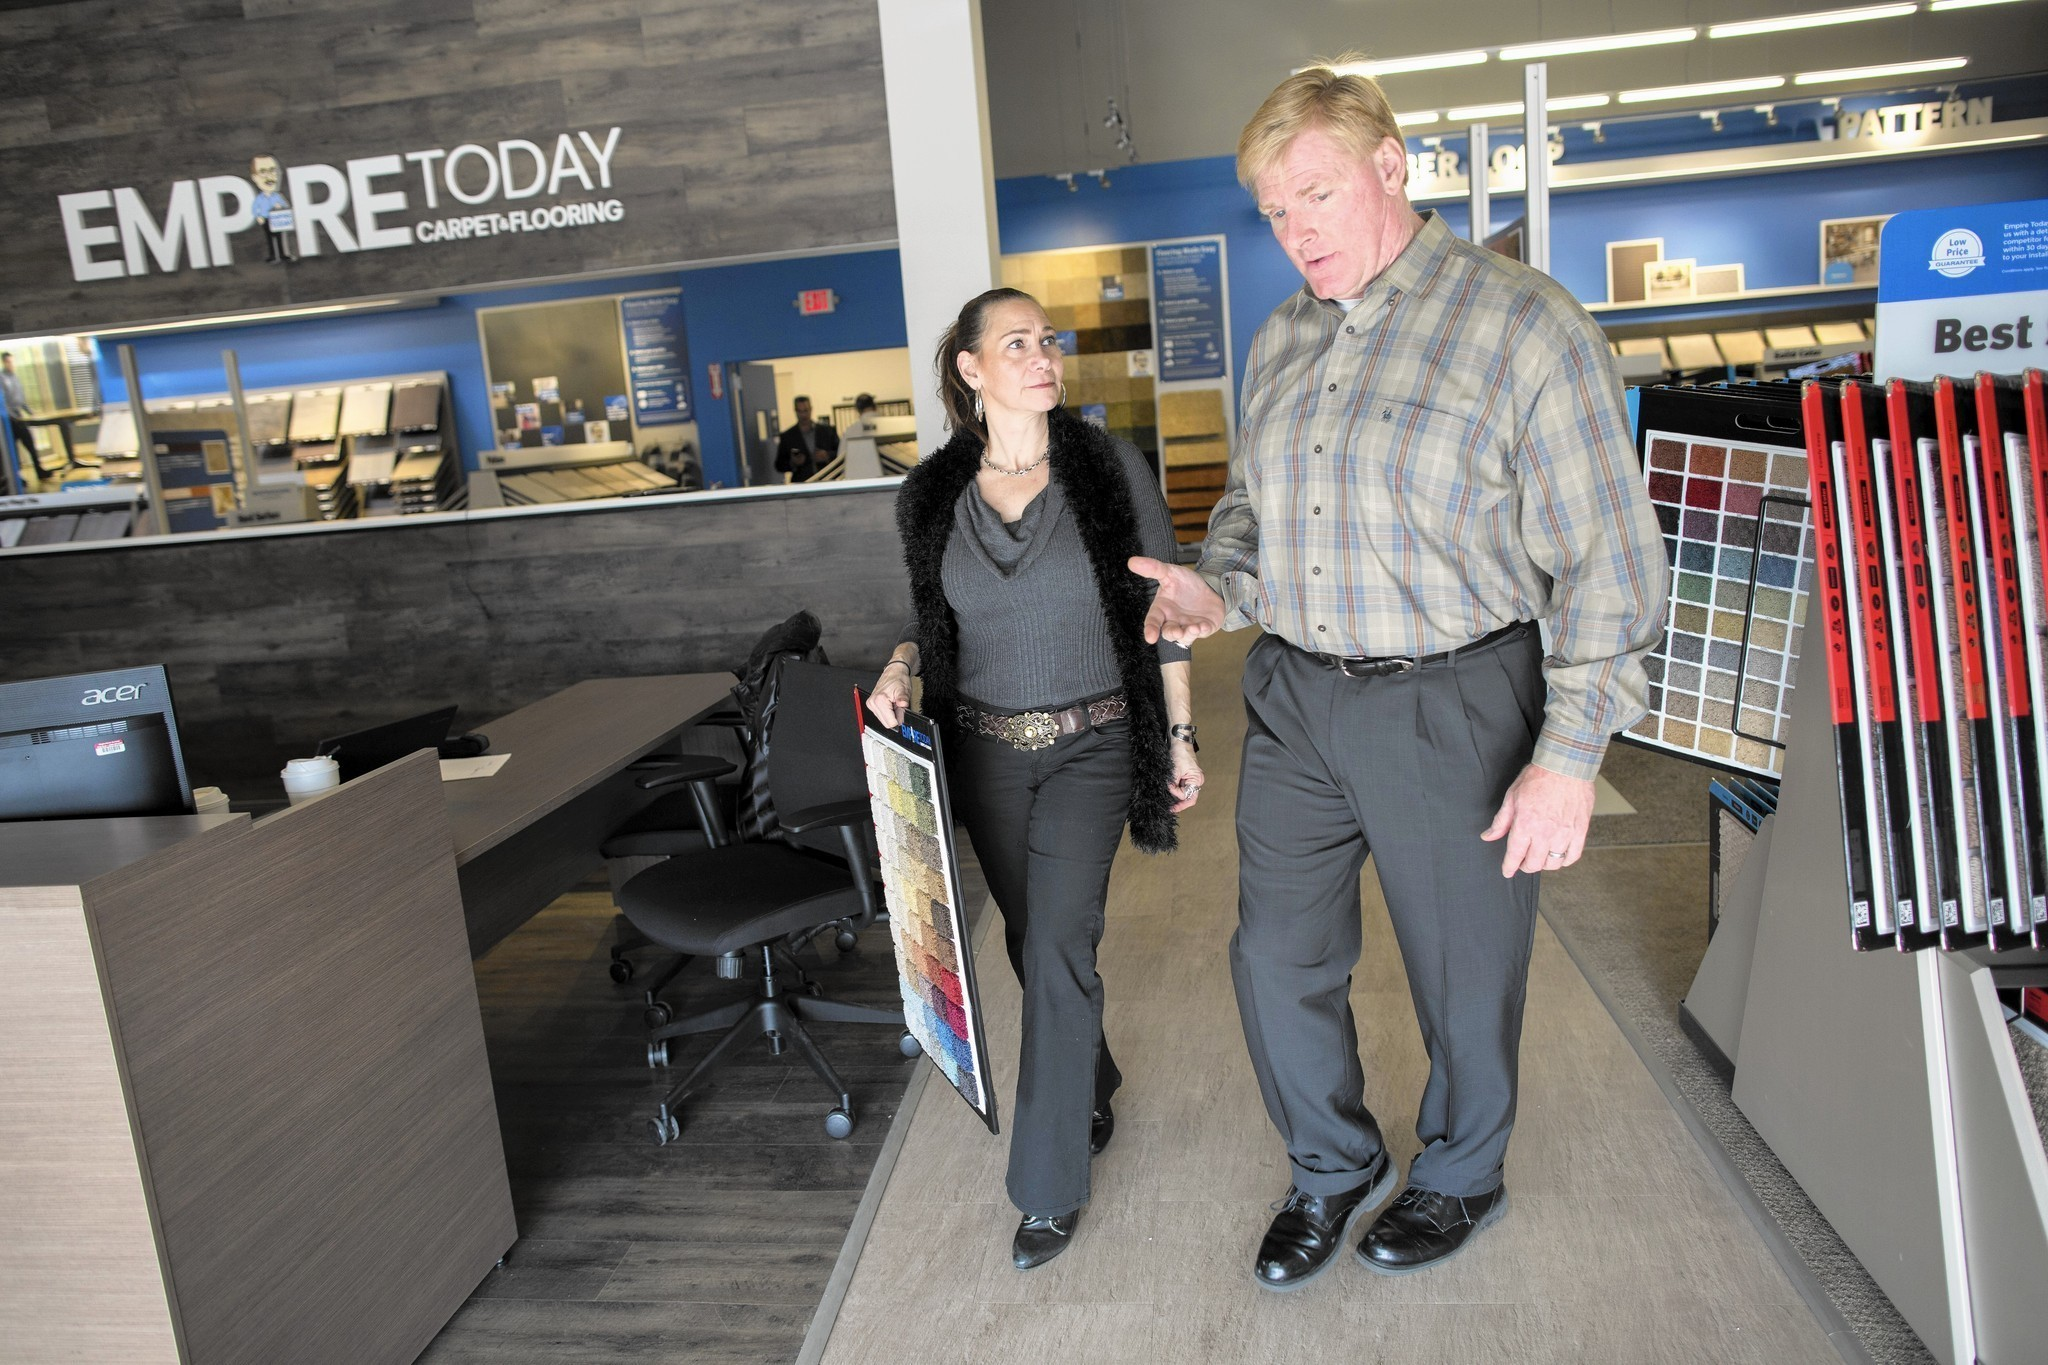 Flooring Retailer Empire Today To Open First Retail Stores